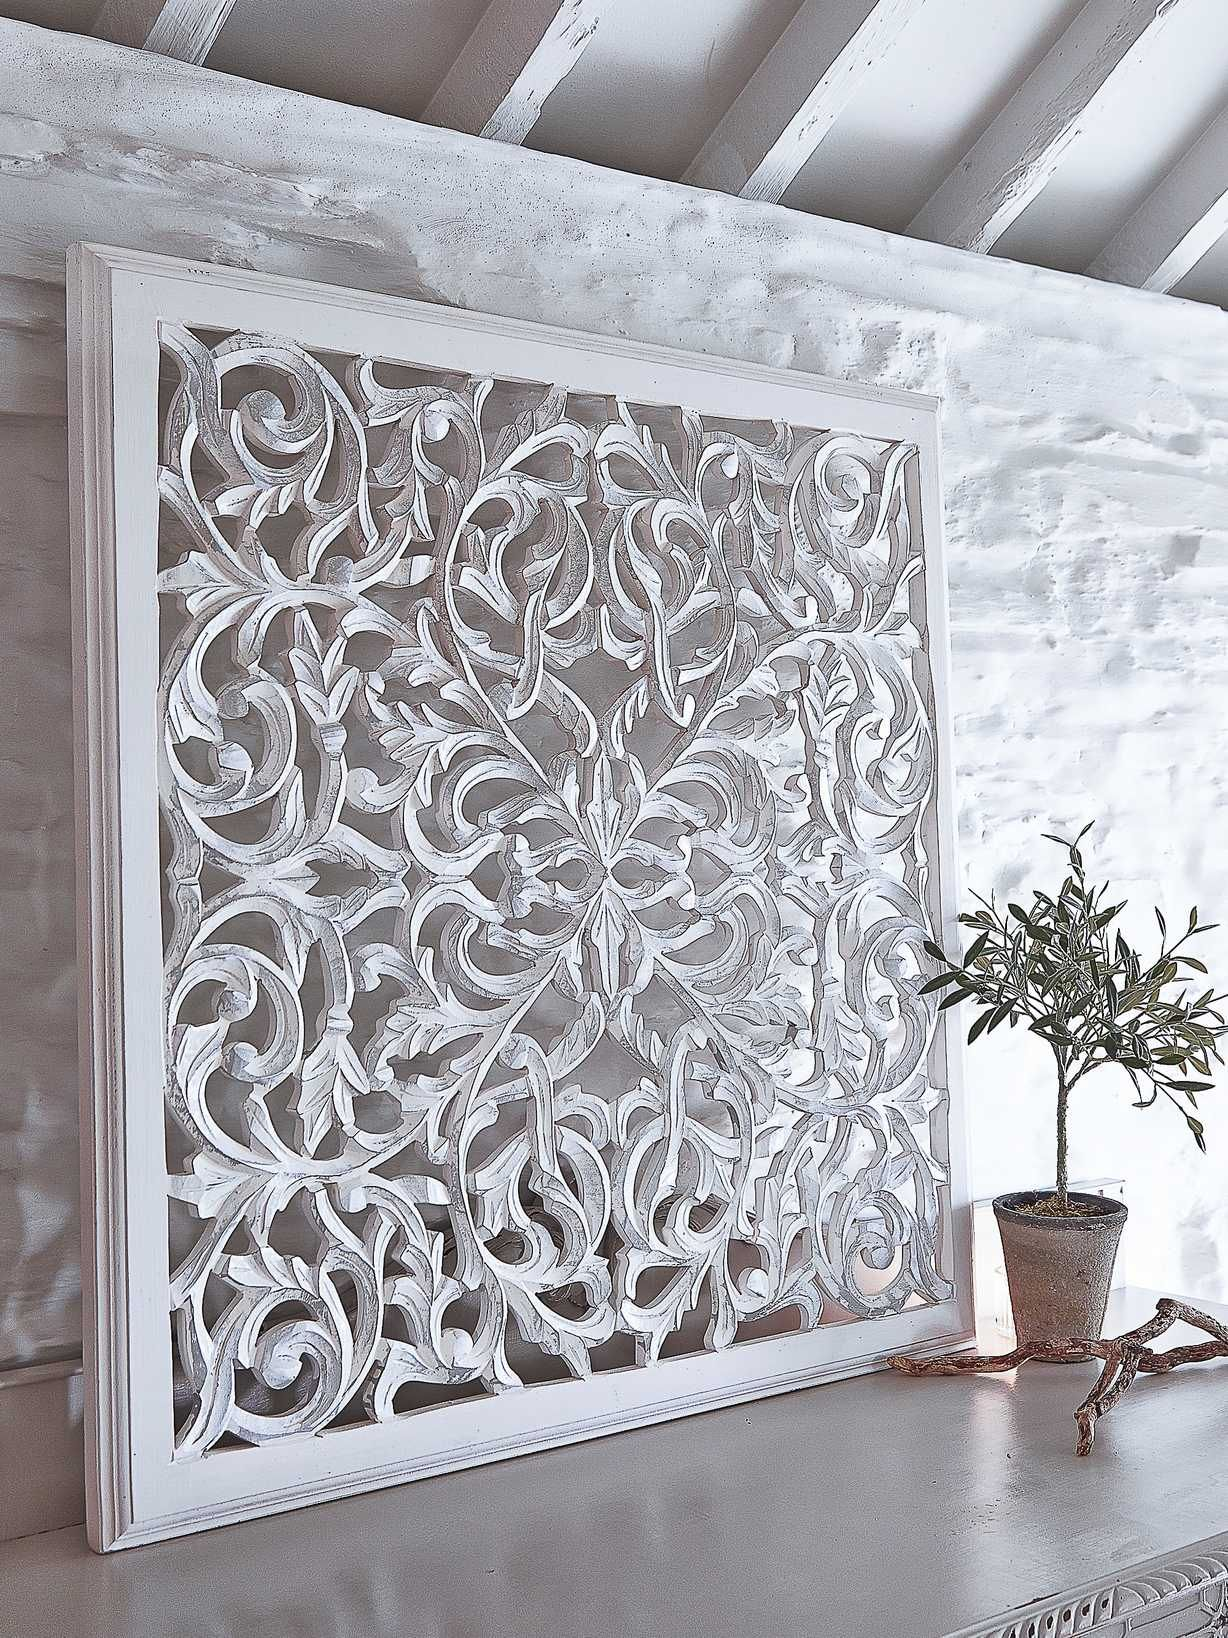 Large Carved Wall Panel Design 1 Wl Wall Panel Design Carved Wood Wall Panels Carved Wood Wall Art